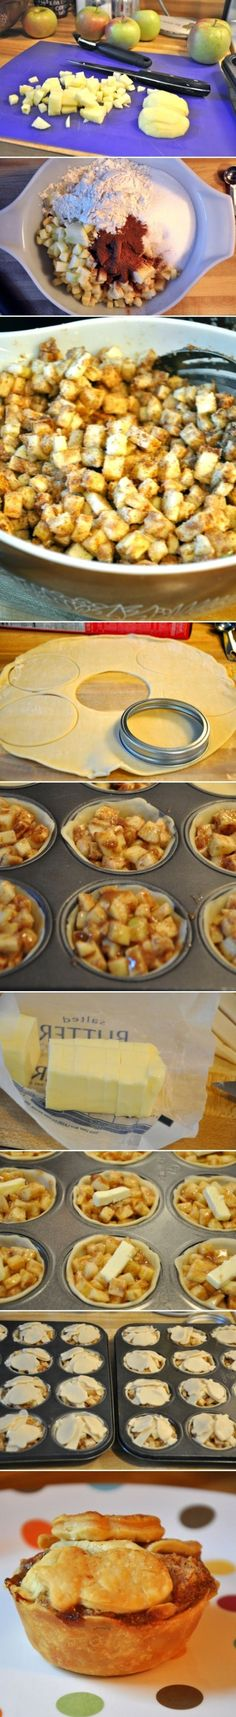 Mini apple pies Ingredients 8 cups of apples medium) 12 tablespoons of flour 1 of sugar 4 heaping teaspoons of cinnamon teaspoon of nutmeg (depending on how much you like nutmeg…you could als… Dessert Oreo, Brownie Desserts, Just Desserts, Delicious Desserts, Dessert Recipes, Yummy Food, Recipes Dinner, Apple Recipes, Sweet Recipes